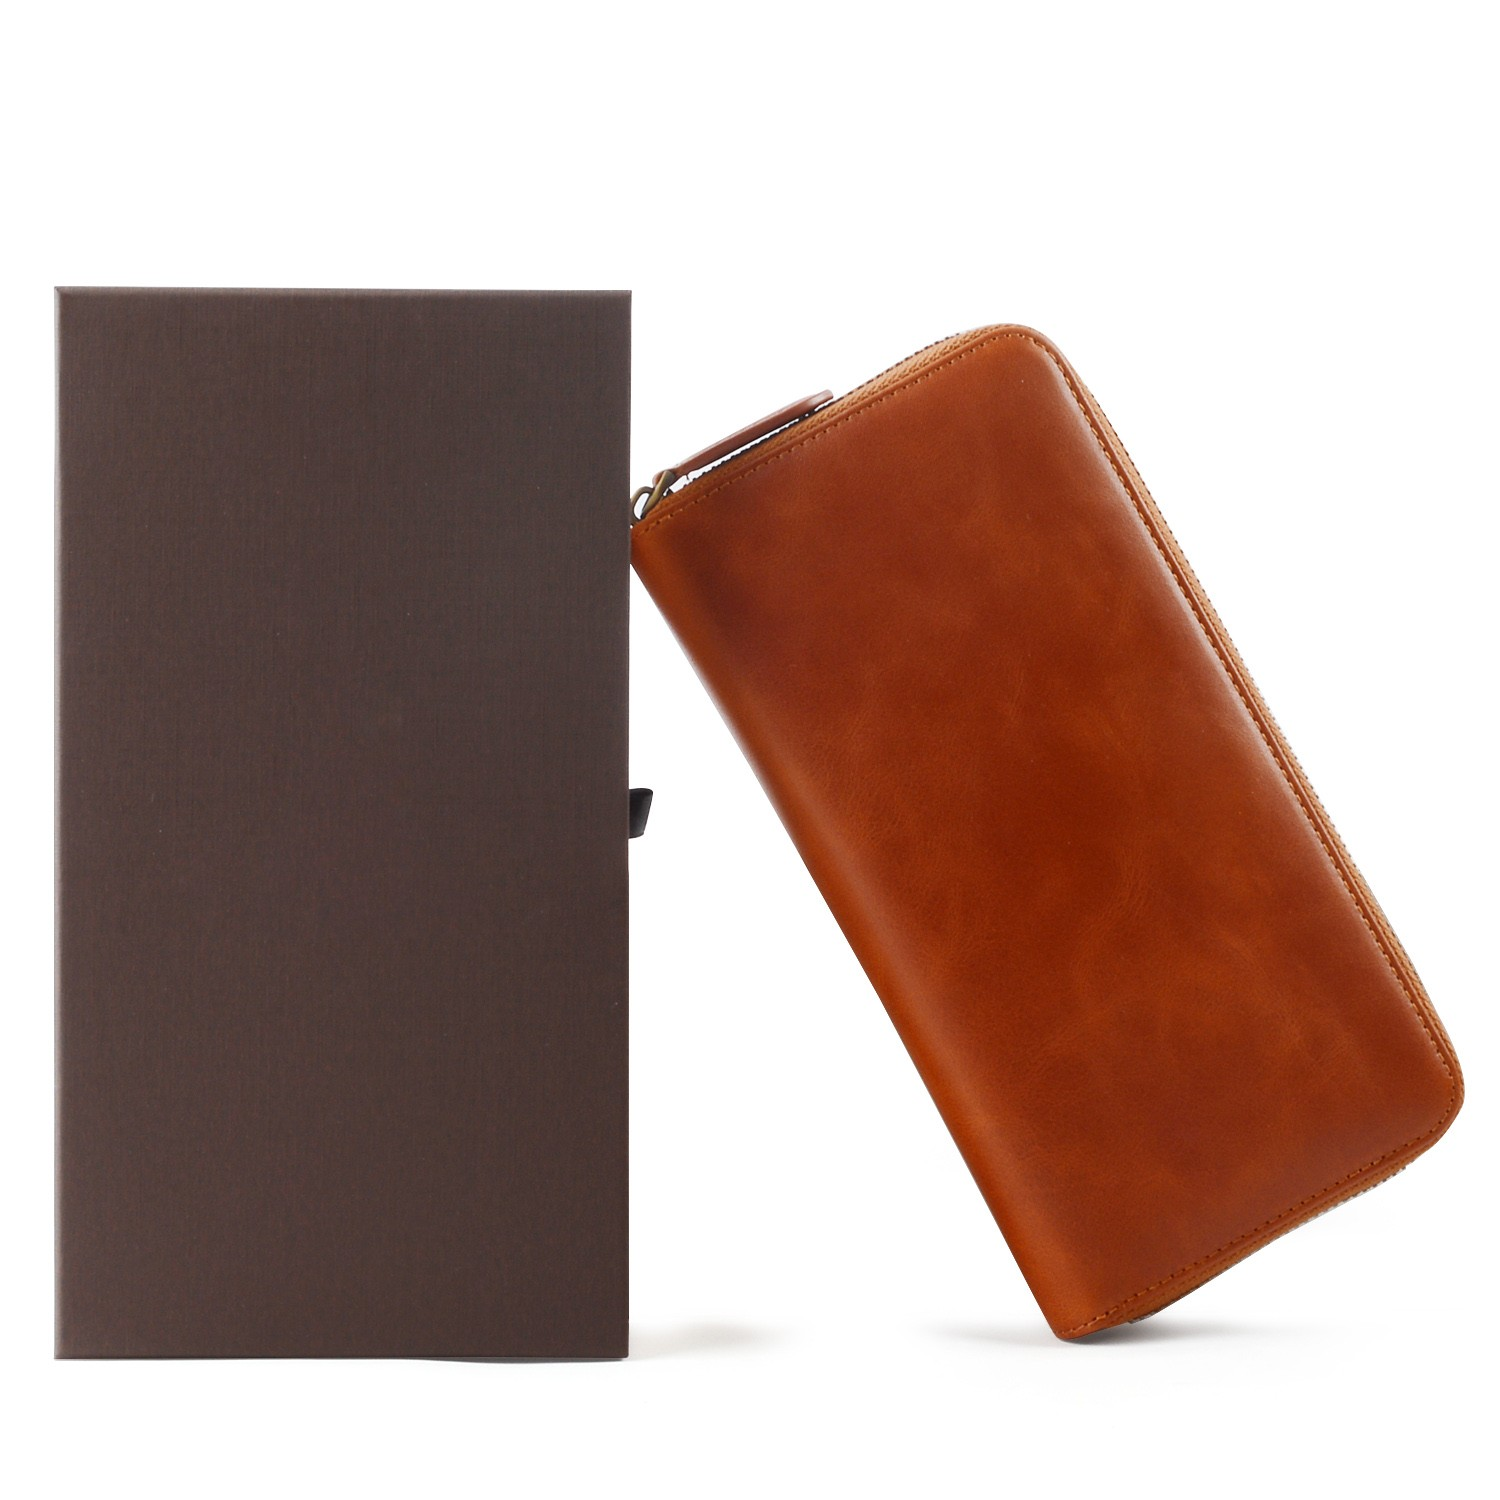 reliable leather card case wallet manufacturer for iphone X-8